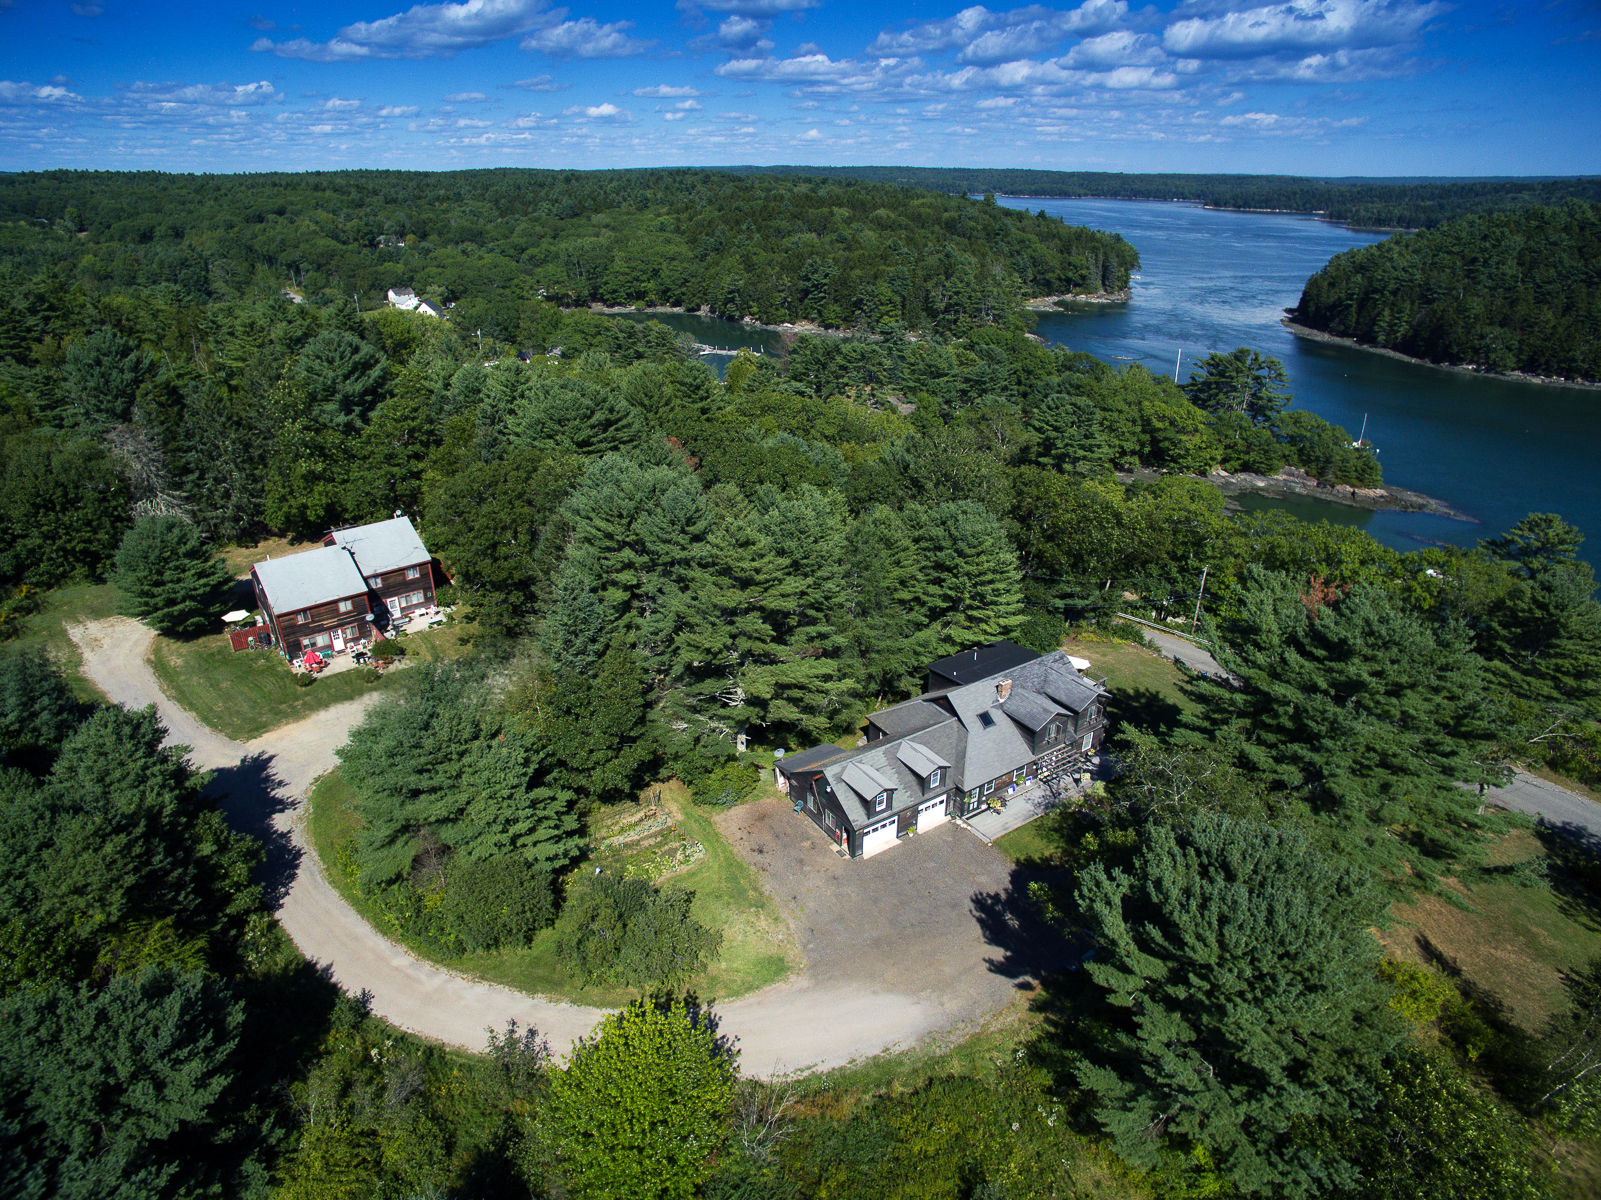 Casa Unifamiliar por un Venta en 5 & 17 Ice Pond Road Boothbay, Maine, 04537 Estados Unidos